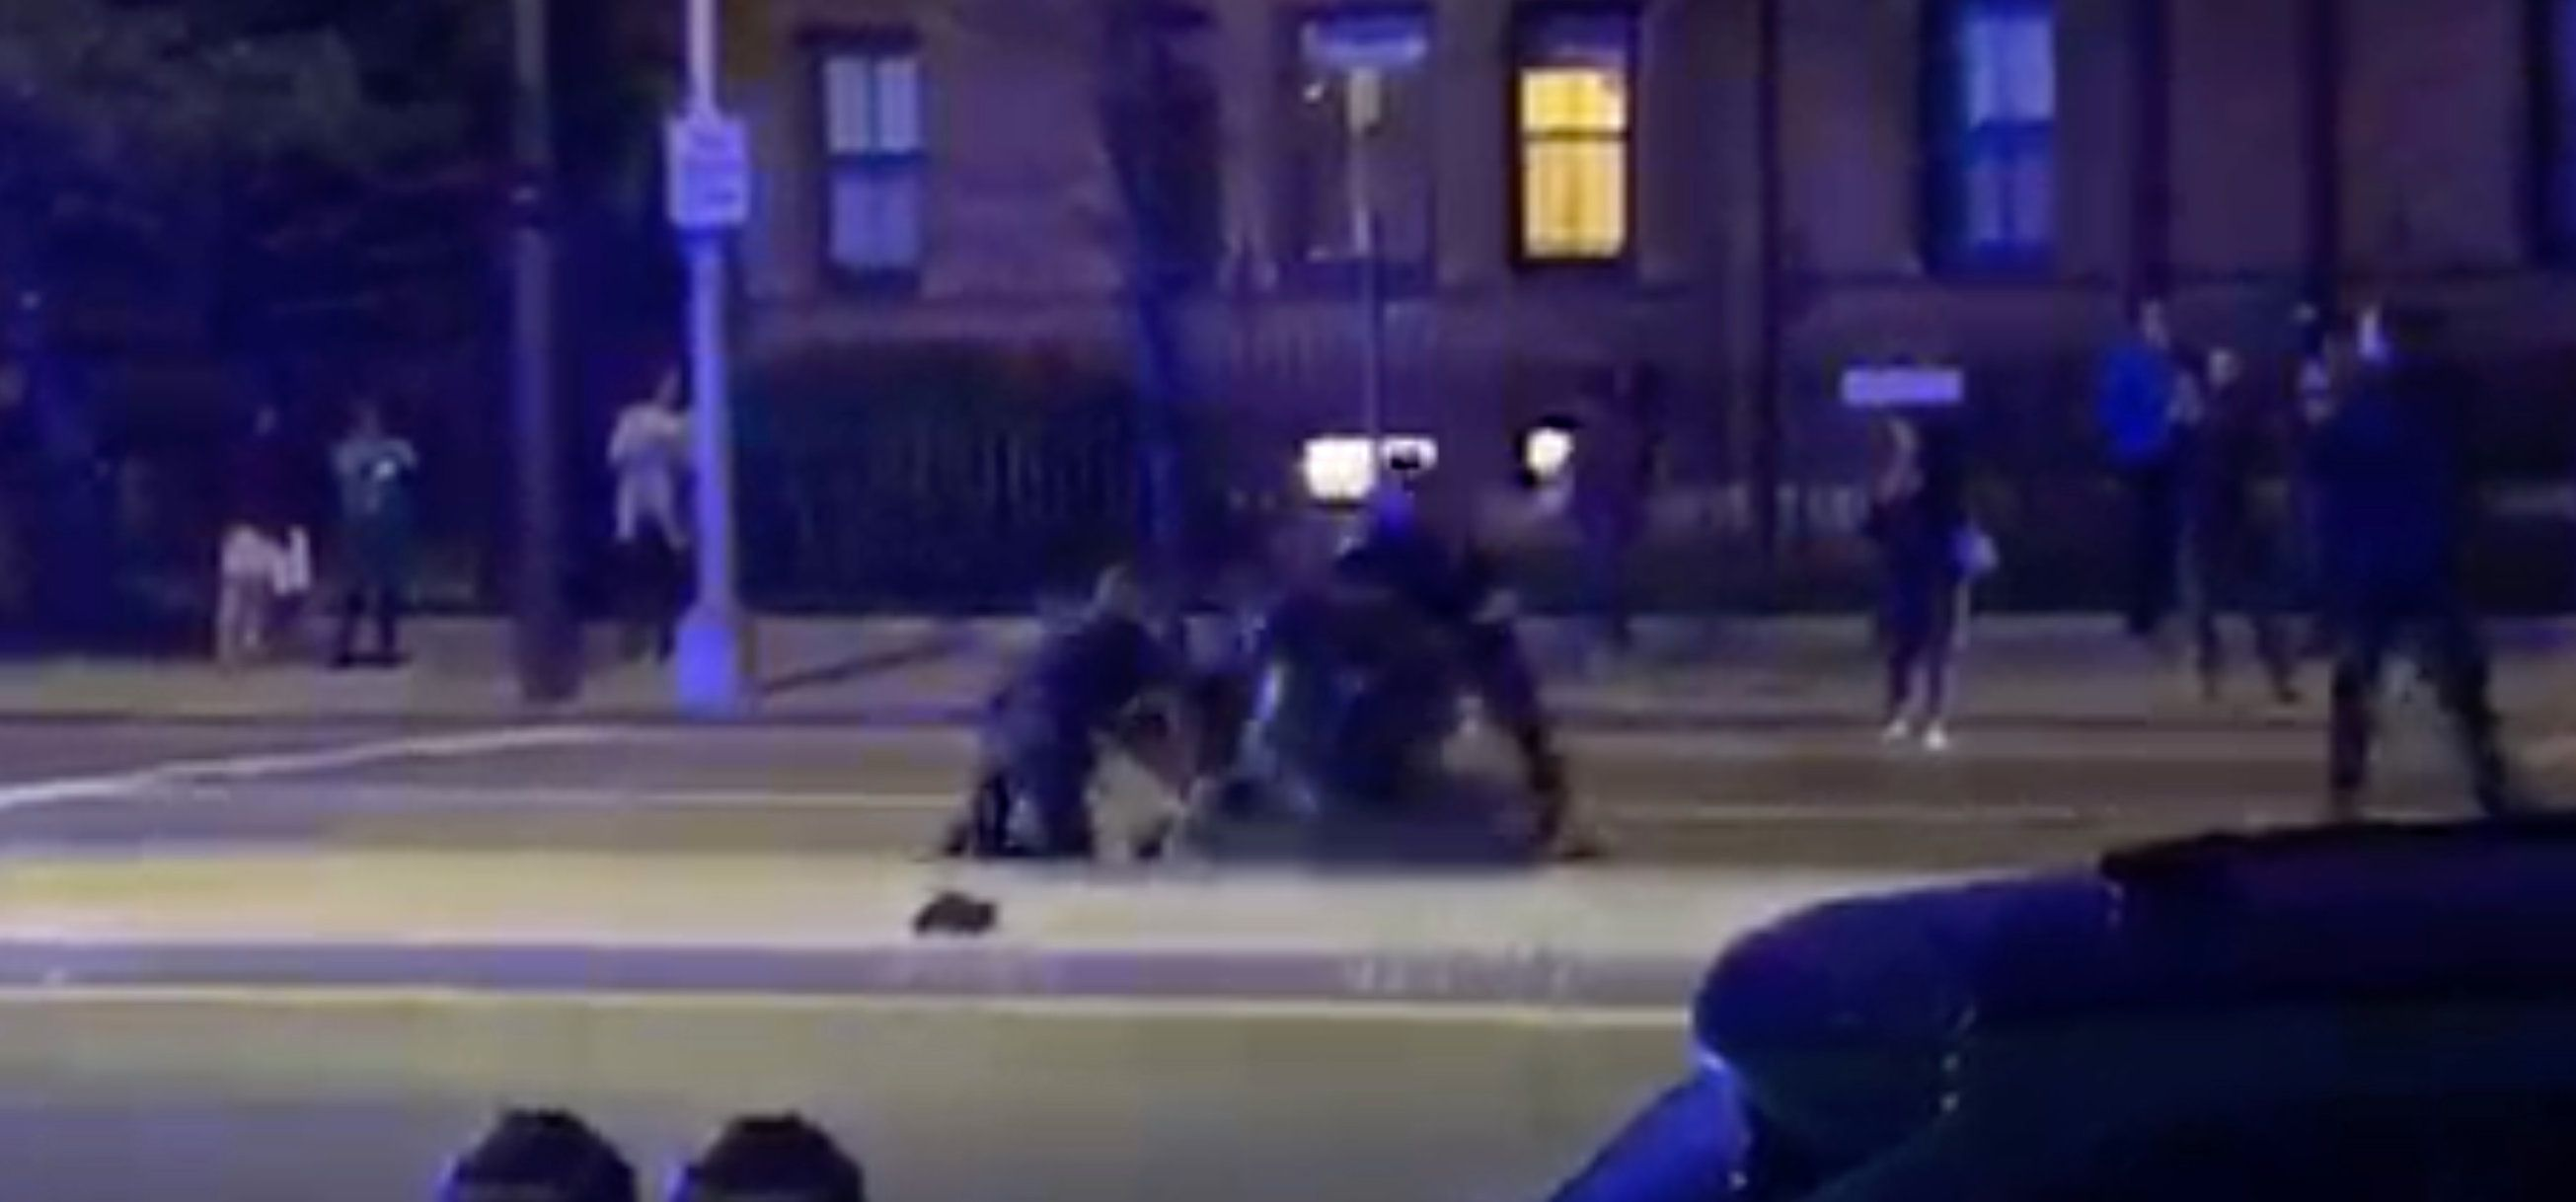 Video of a black Harvard student being punched by